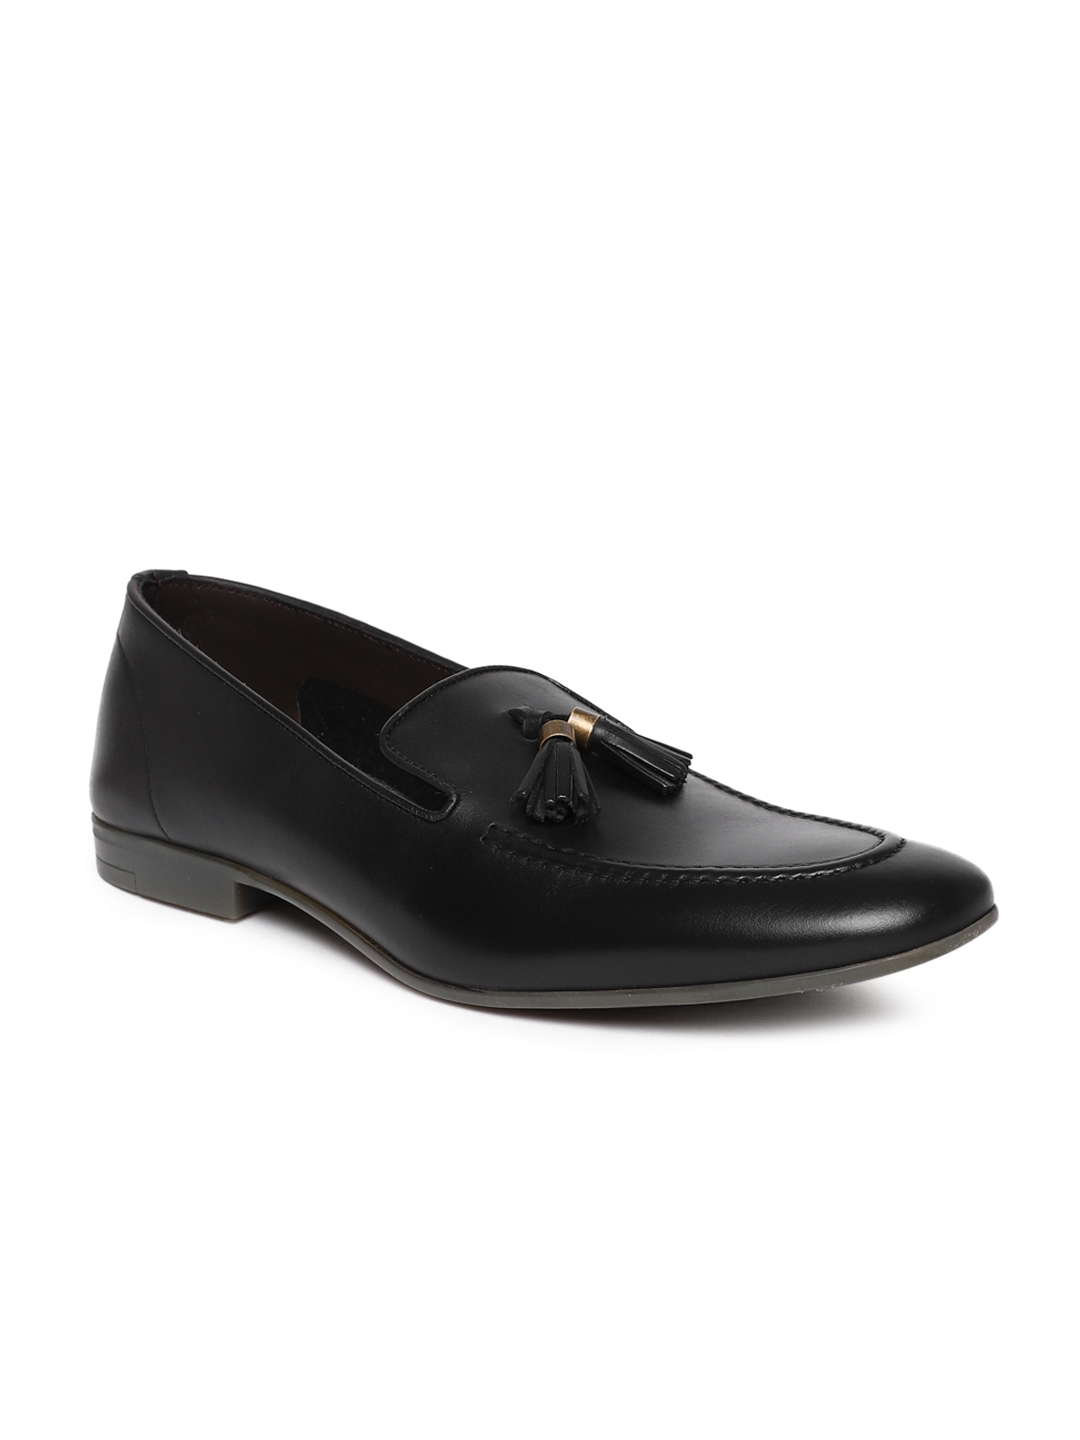 bb5a03ecc3d Buy Dune London Men Black REMY DI Leather Formal Loafers - Formal ...